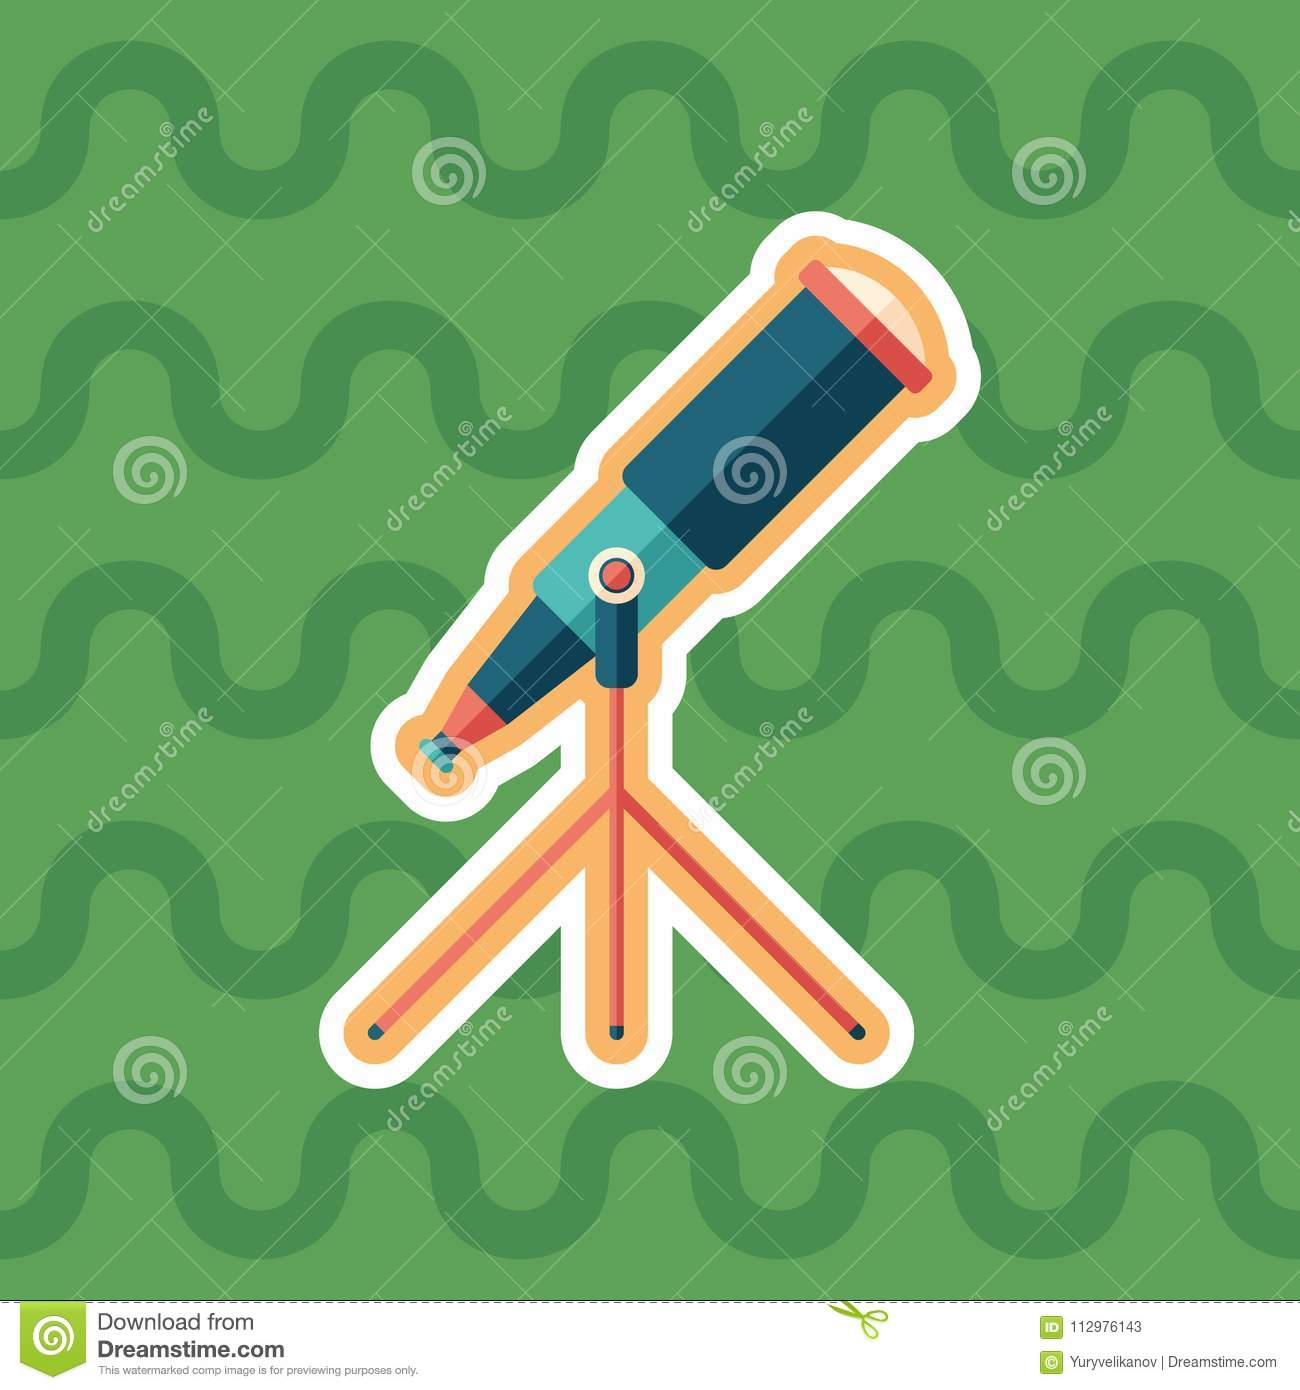 Telescope sticker flat icon with color background.